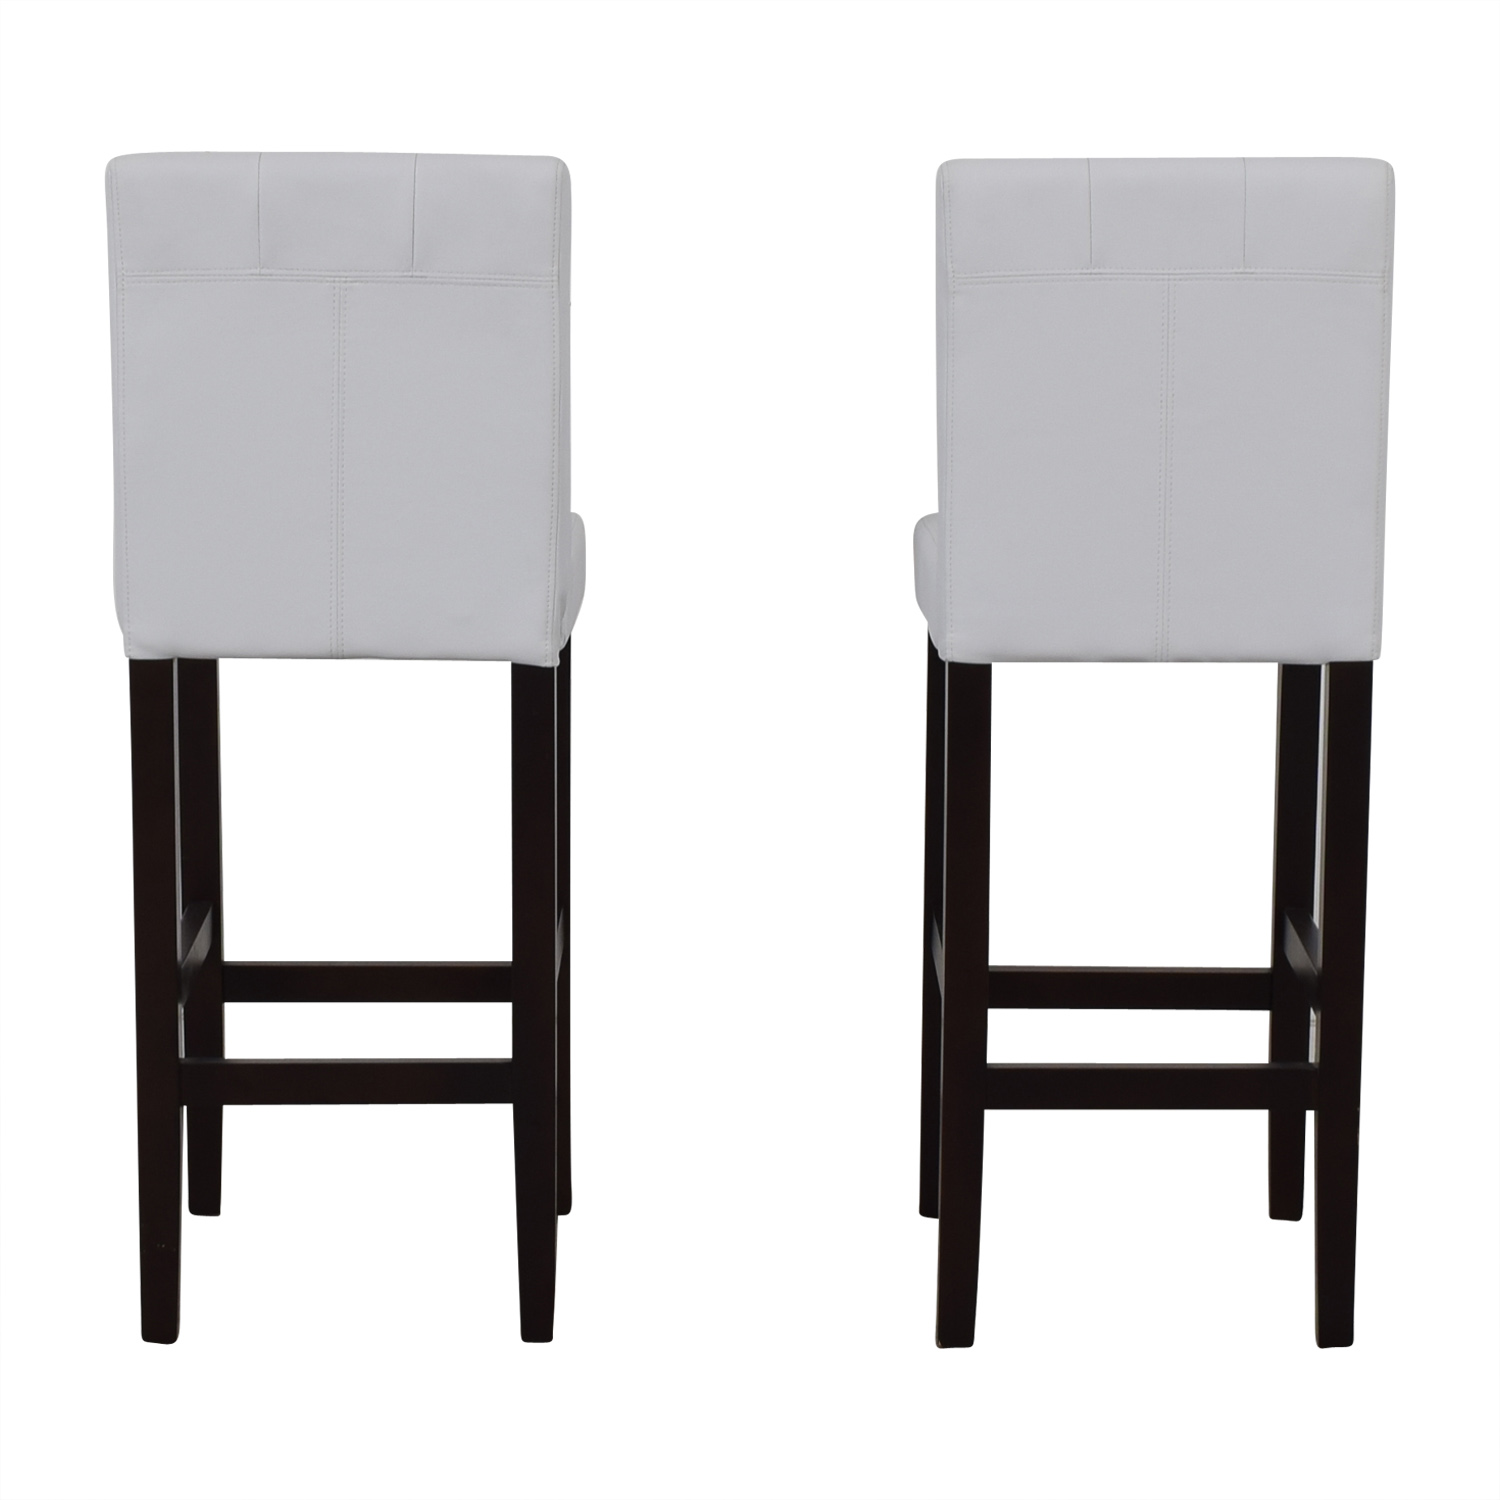 buy Crate & Barrel Tufted White Barstools Crate & Barrel Chairs